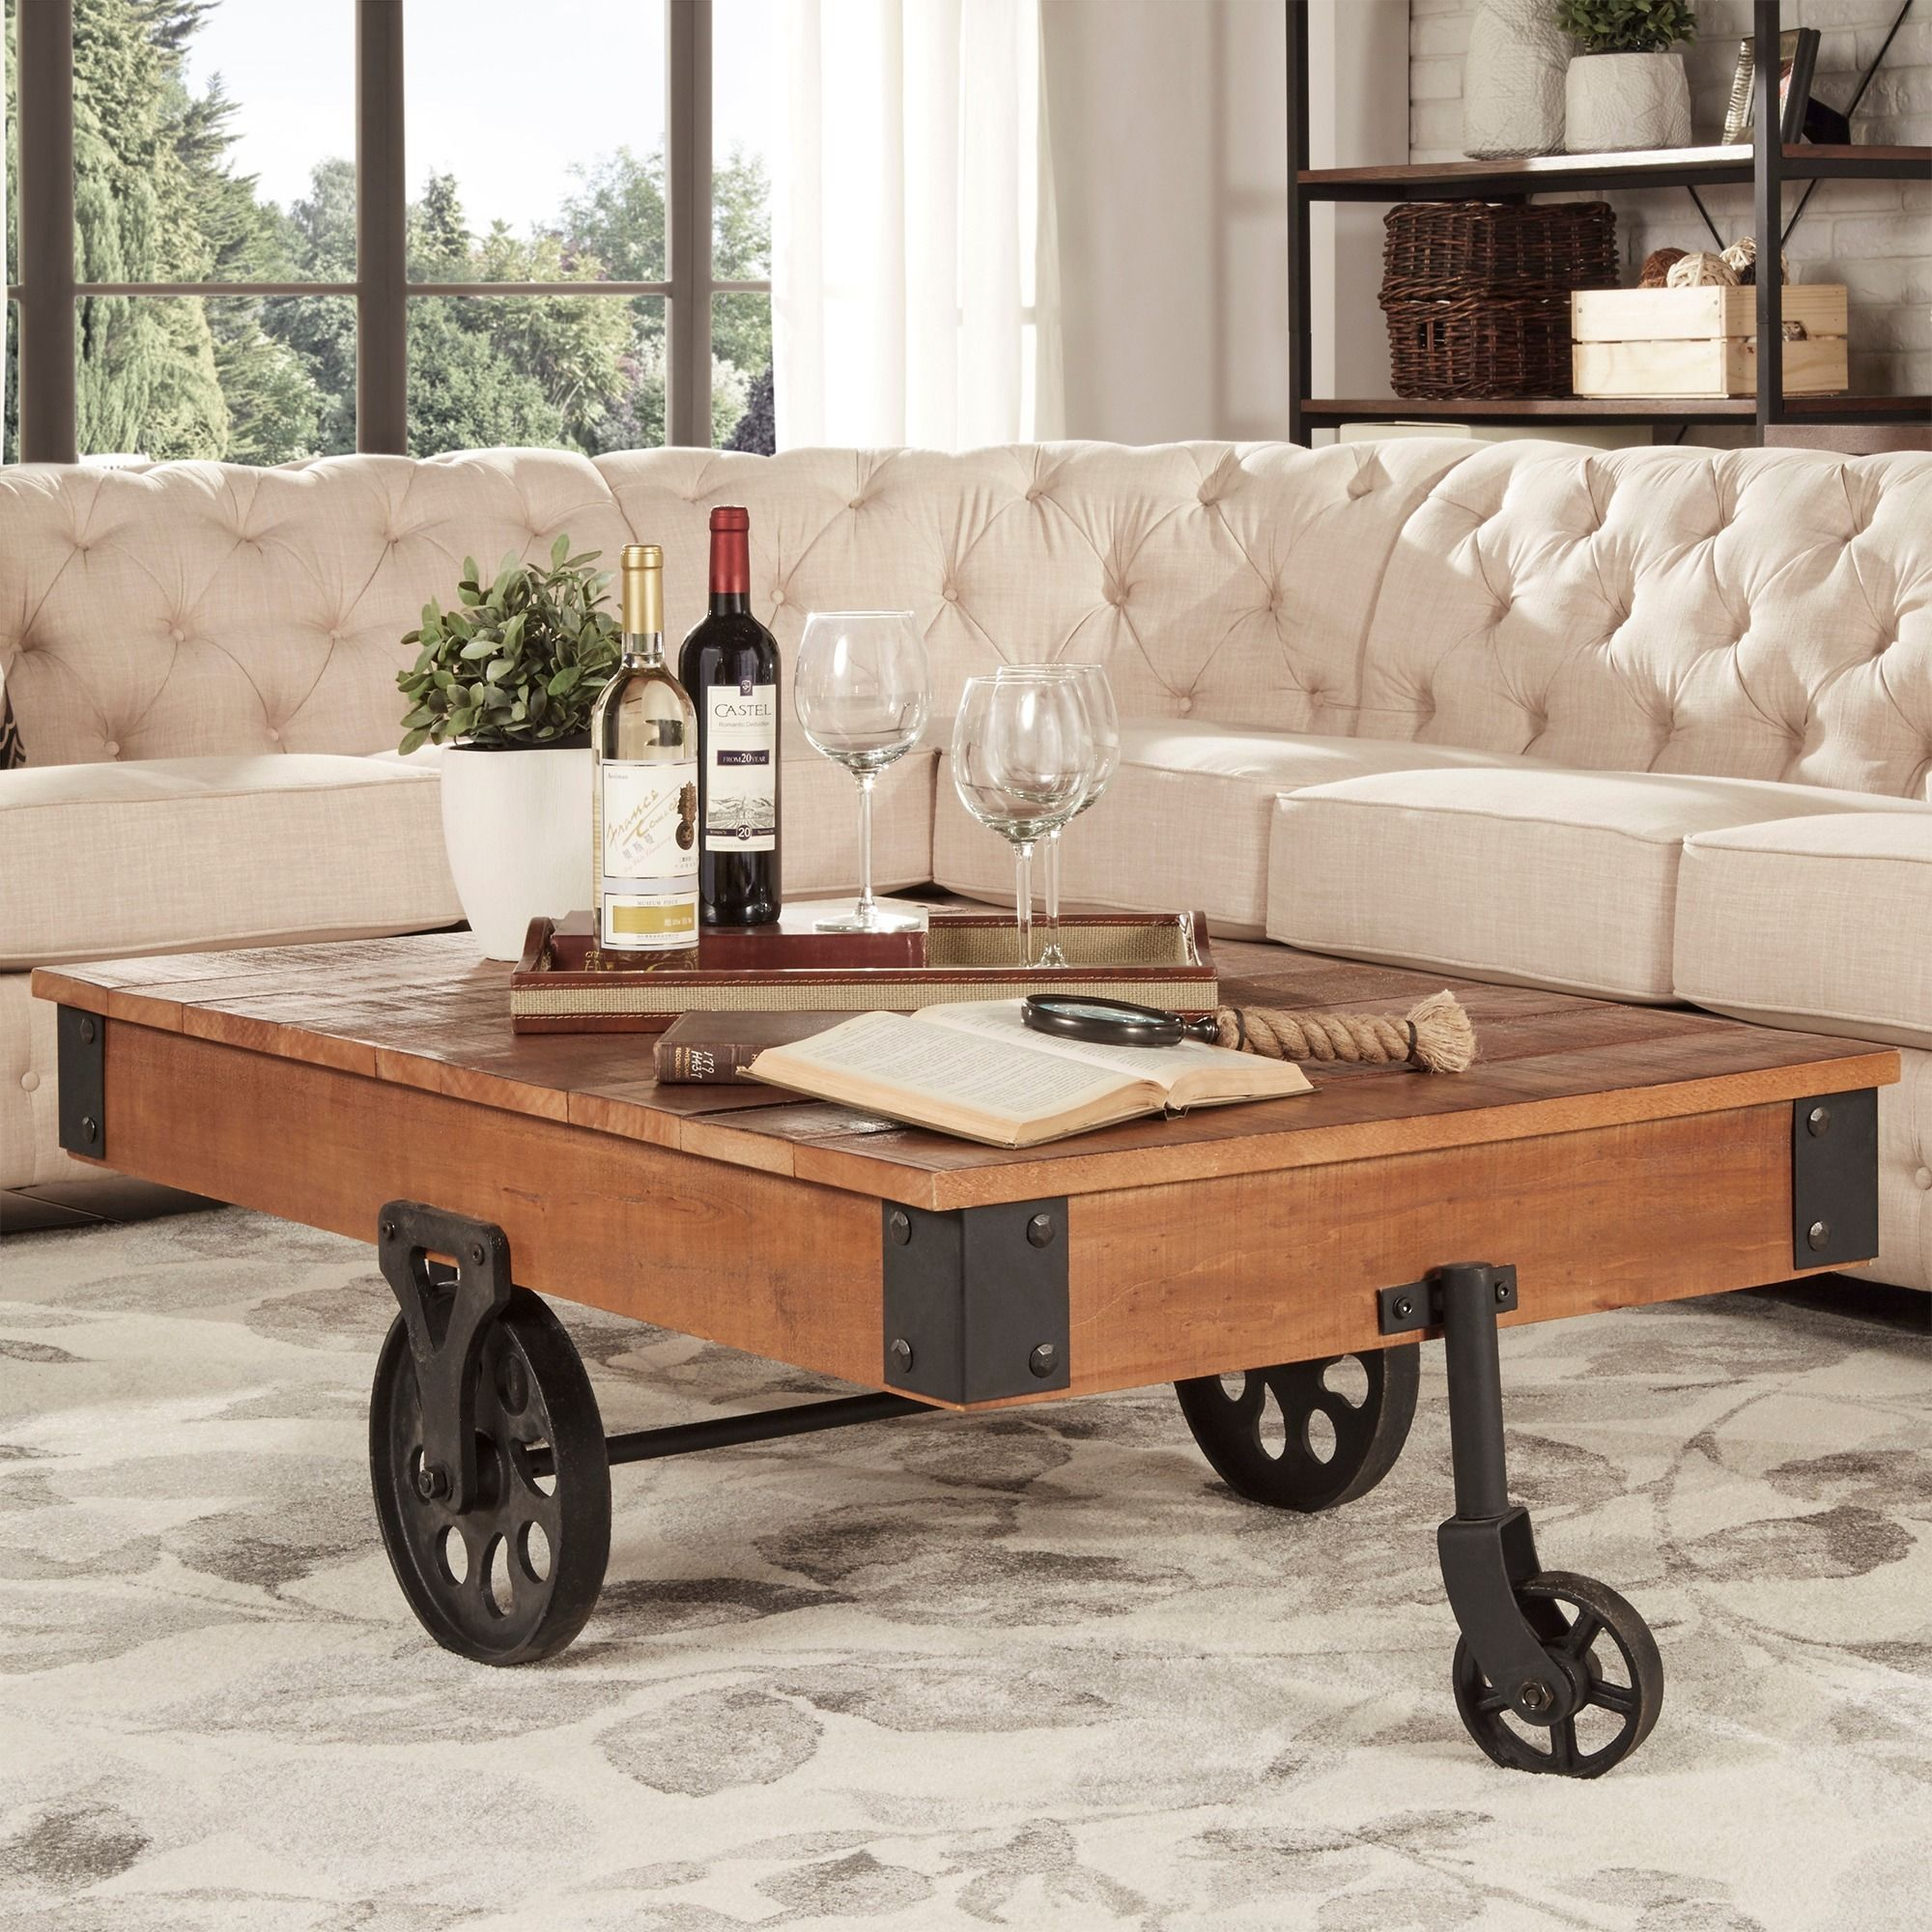 Enjoy A Drink With Friends While Sitting Around This Unique Cocktail Table.  Its Funky Design